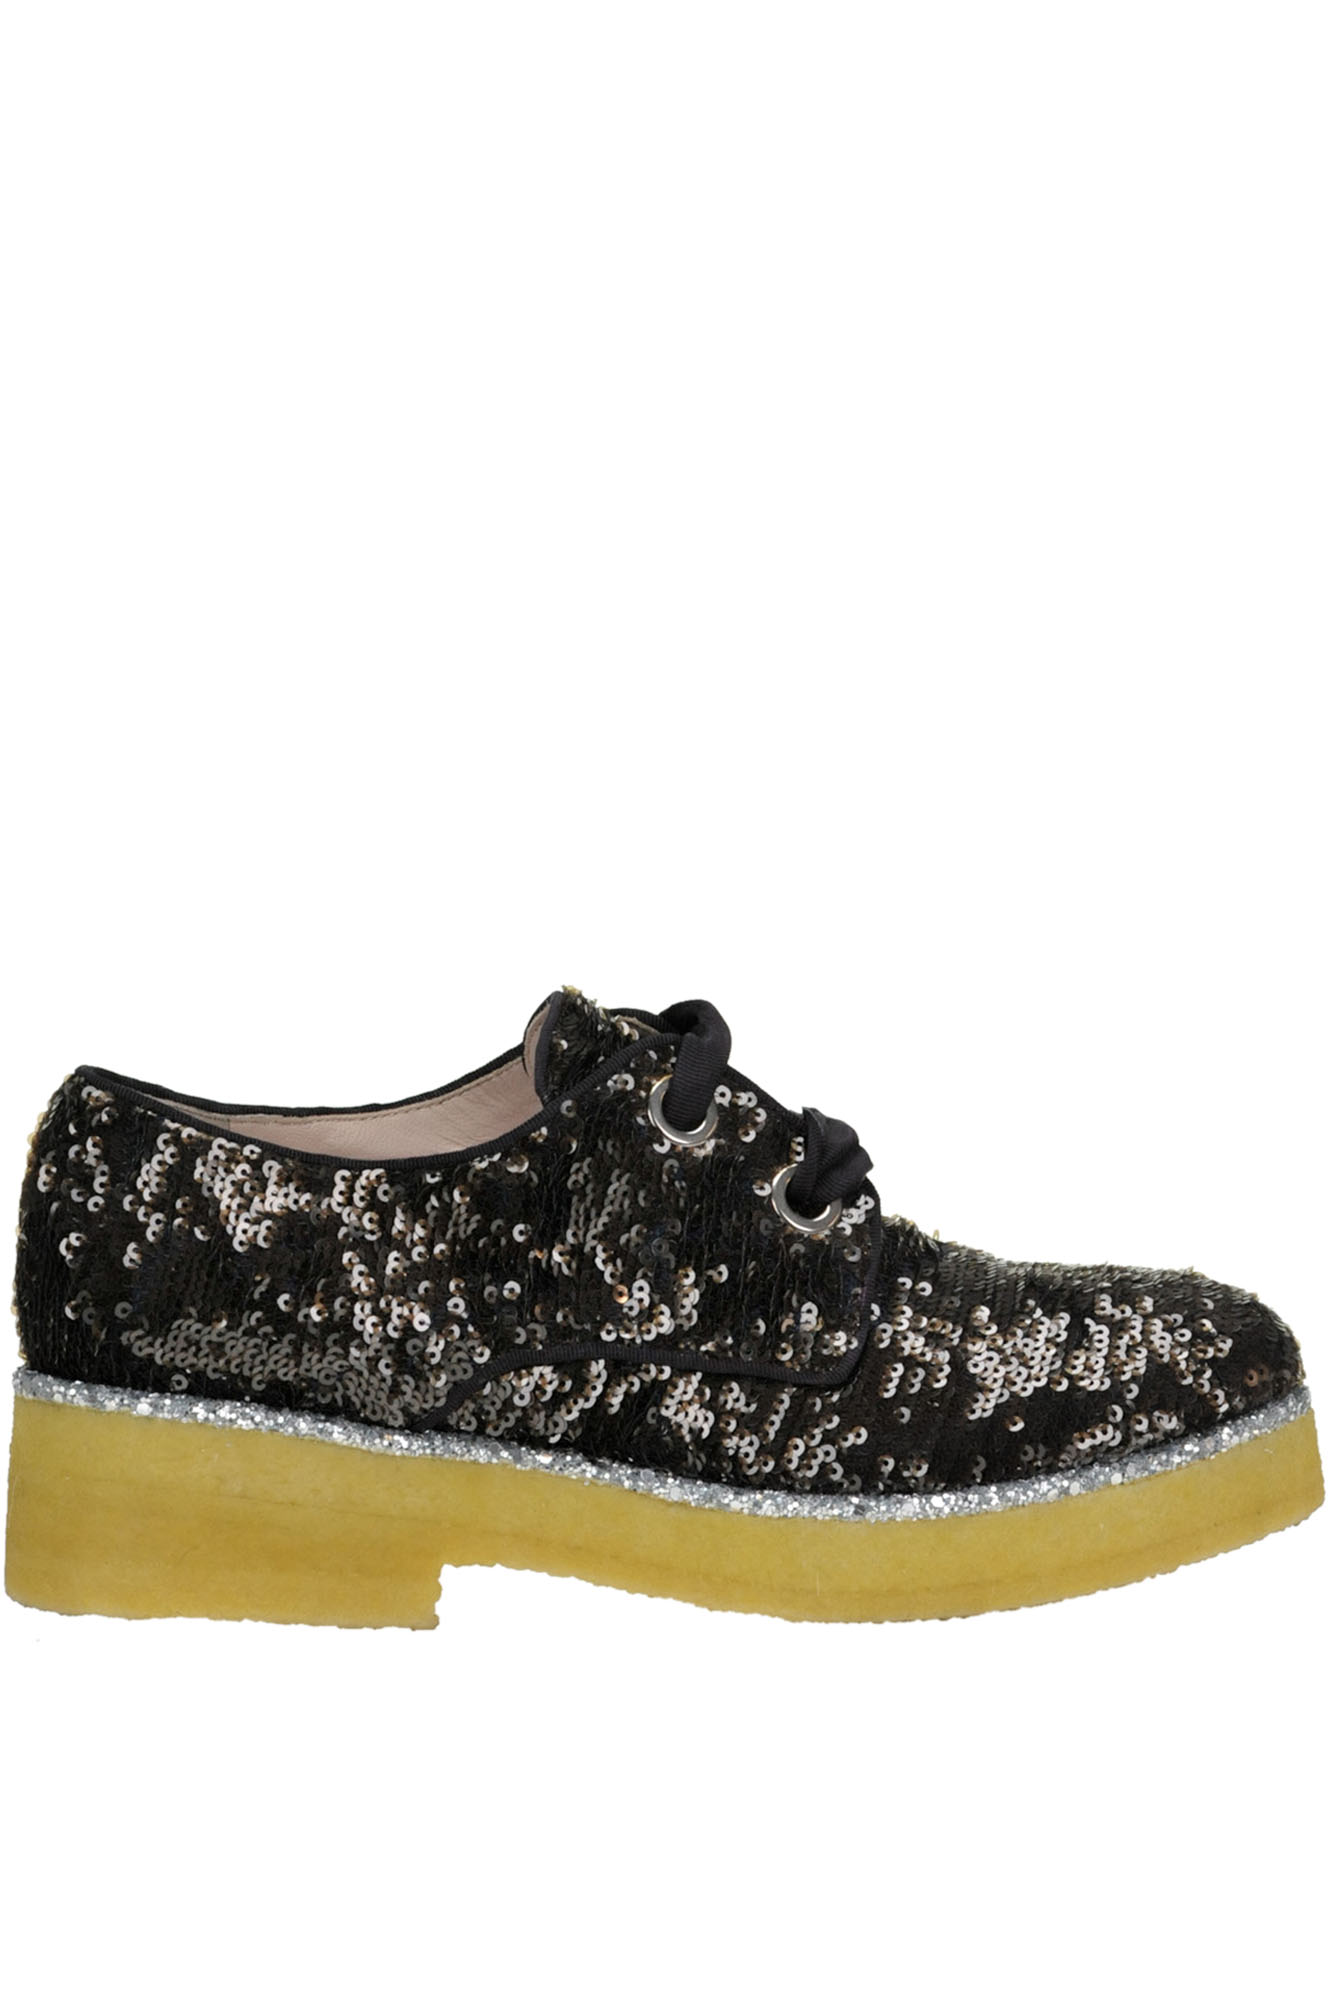 ALBERTO GOZZI Sequined Lace-Up Shoes in Dark Brown